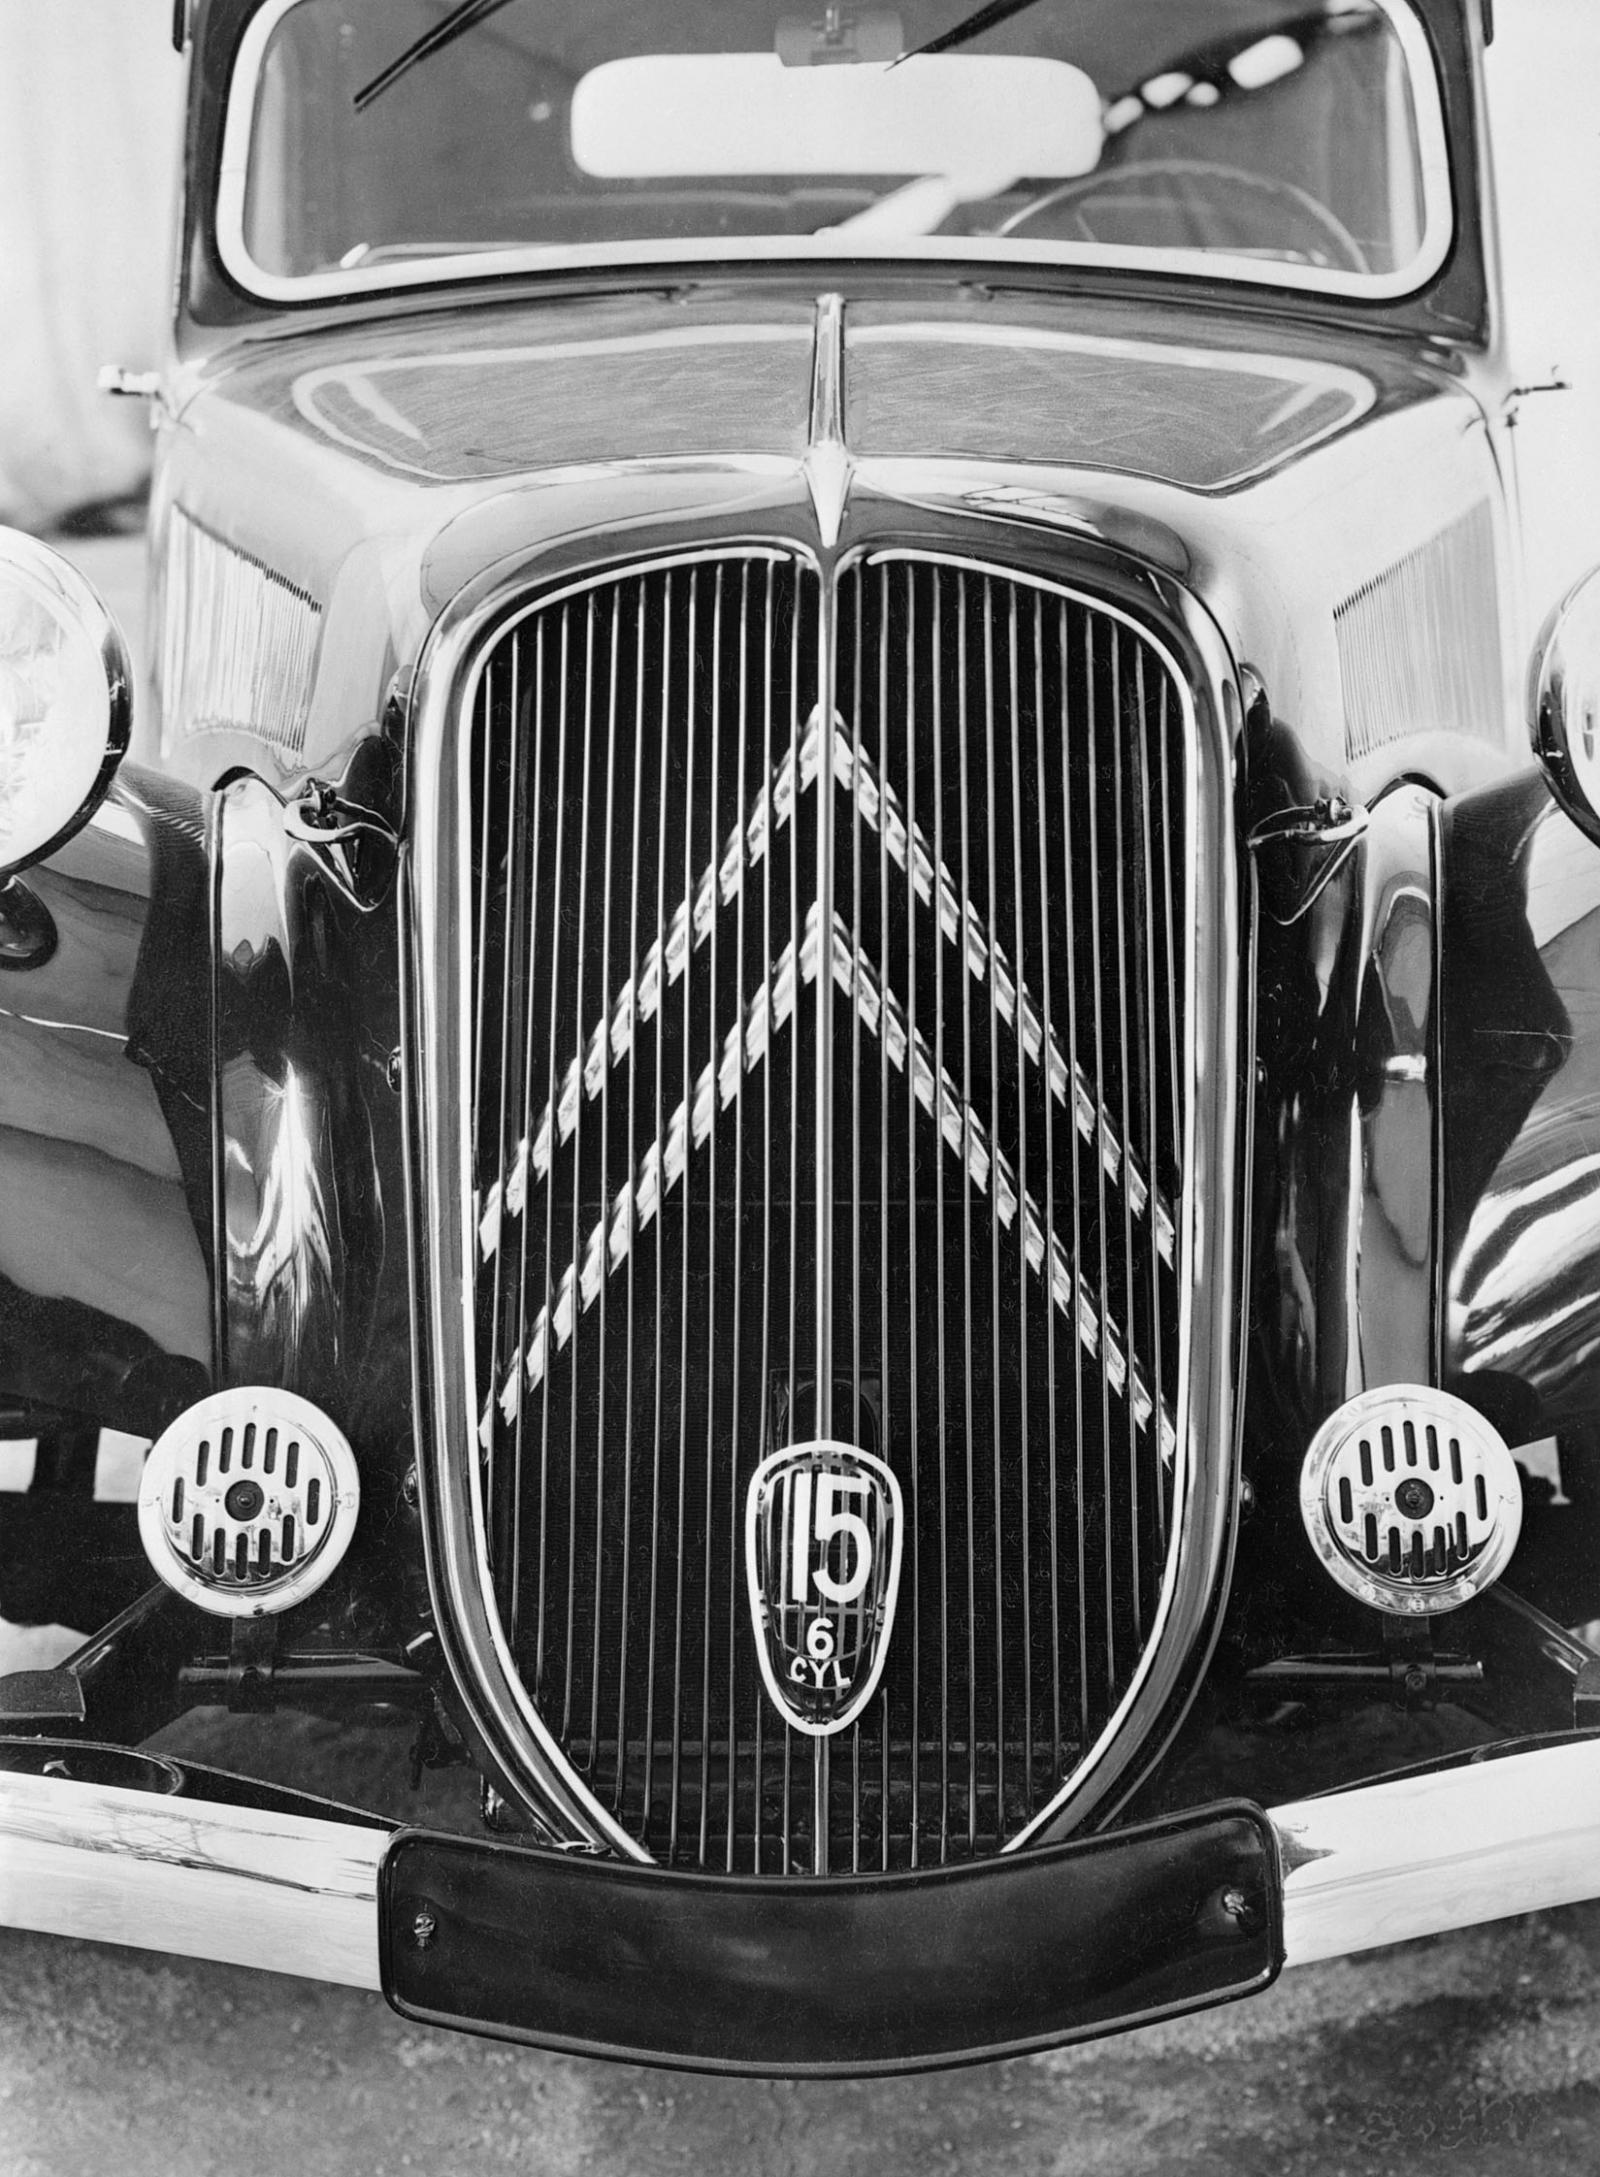 Traction 15 SIX 1938 grill